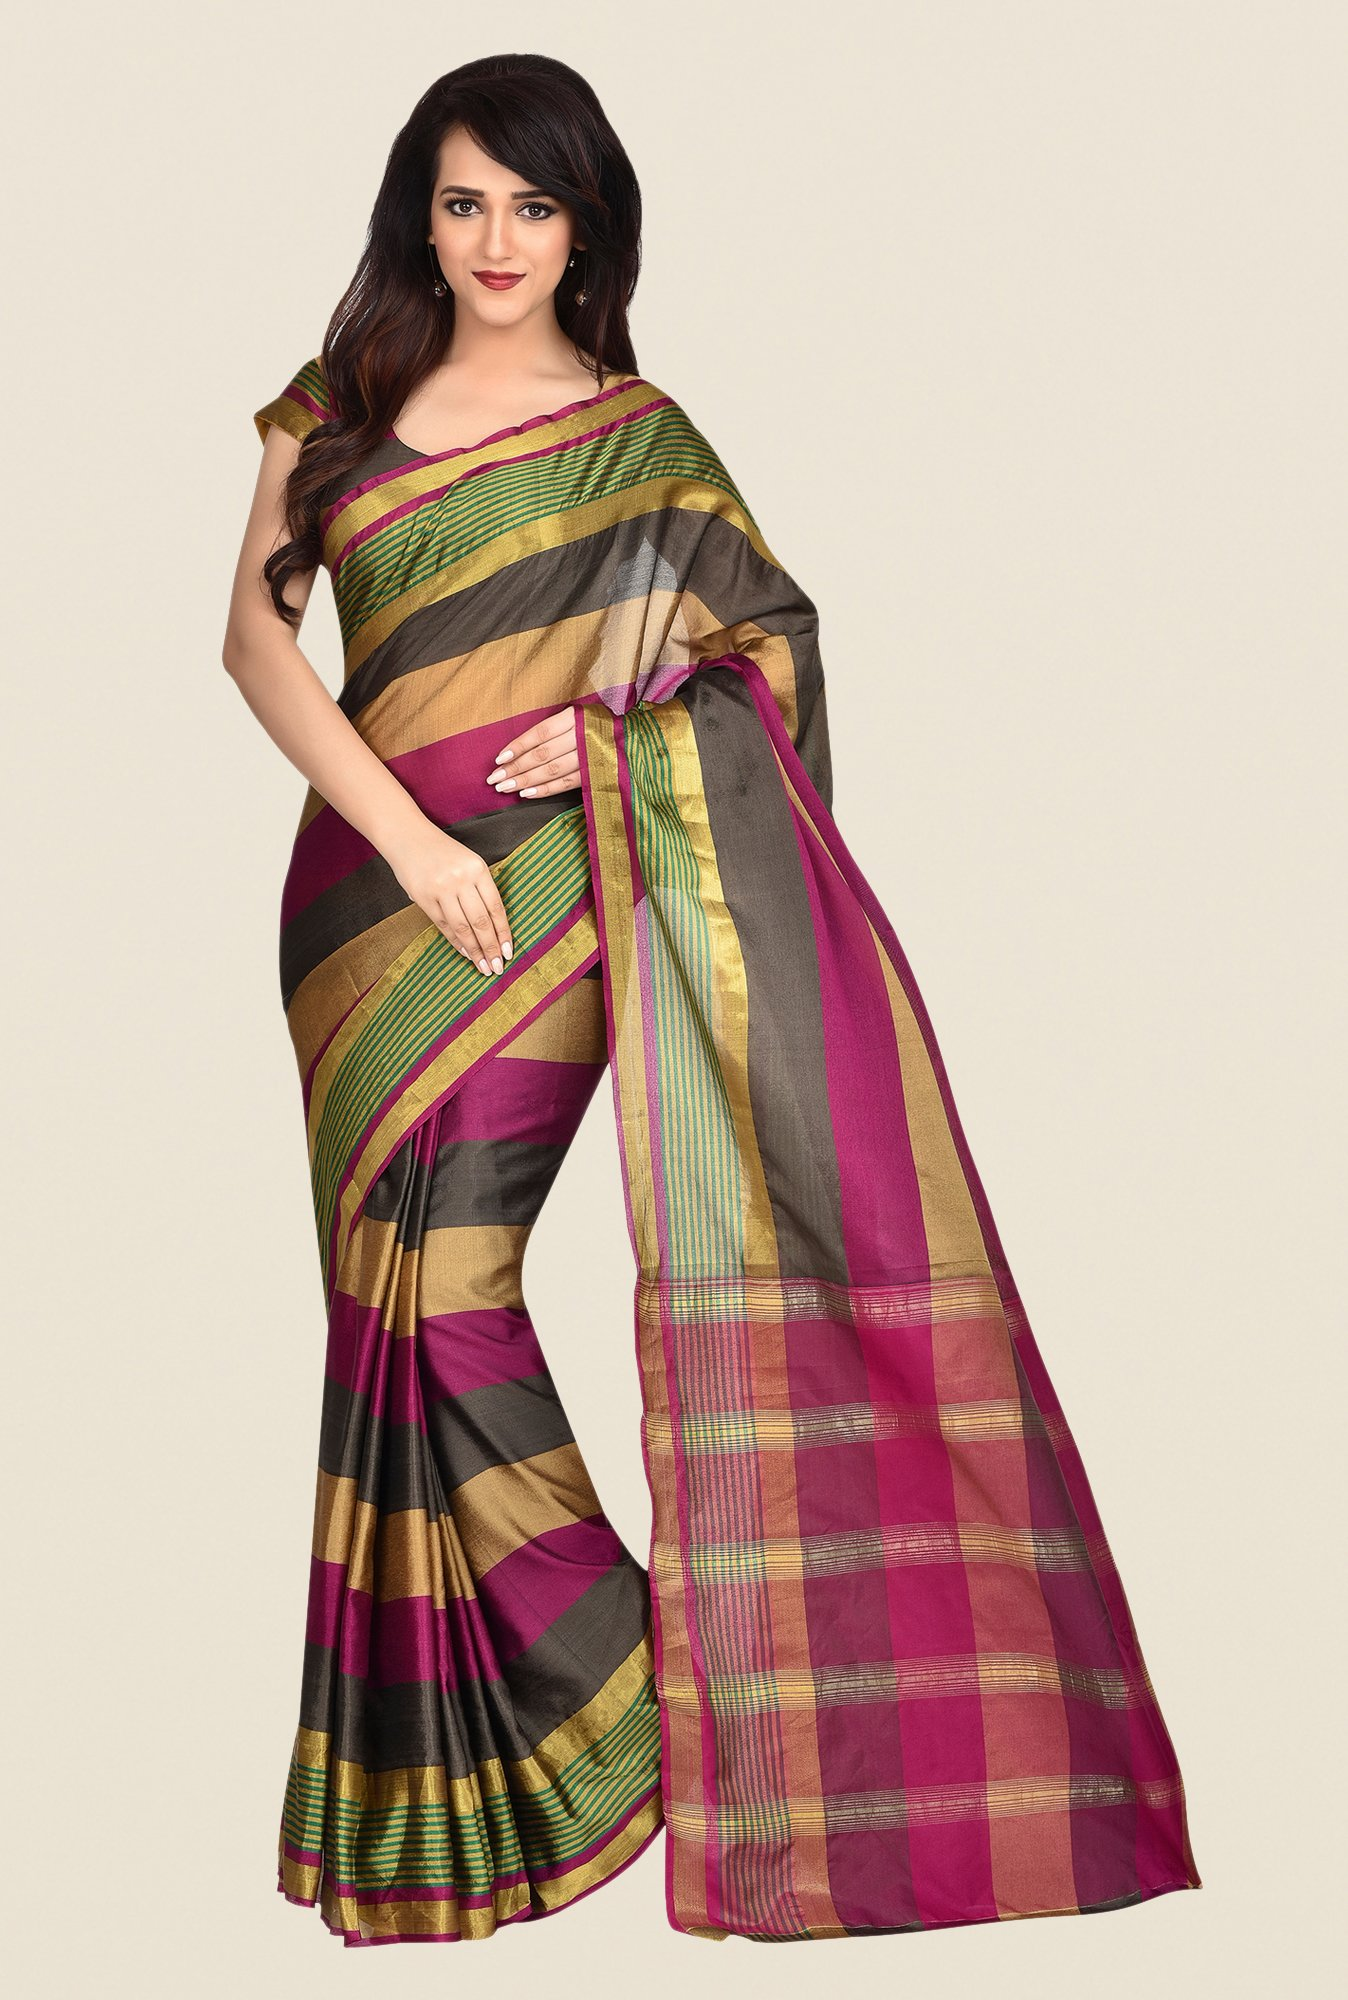 Shonaya Multicolor Banarasi Art Stripes Saree